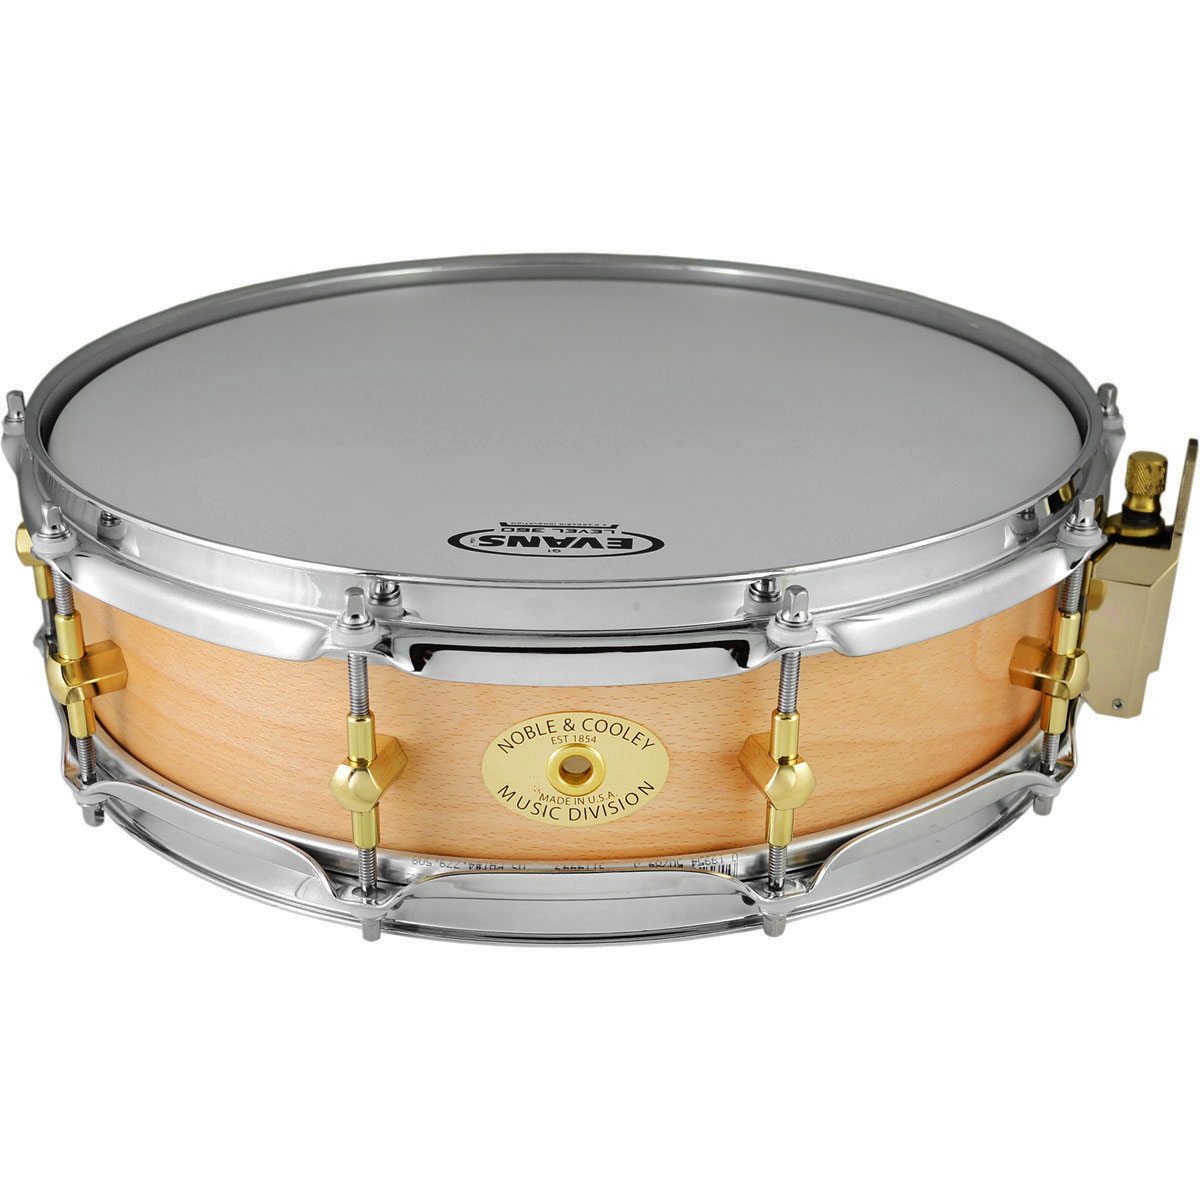 "Noble & Cooley 3 7/8"" x 14"" Classic Solid Shell Beech Piccolo Snare Drum in Clear Oil"